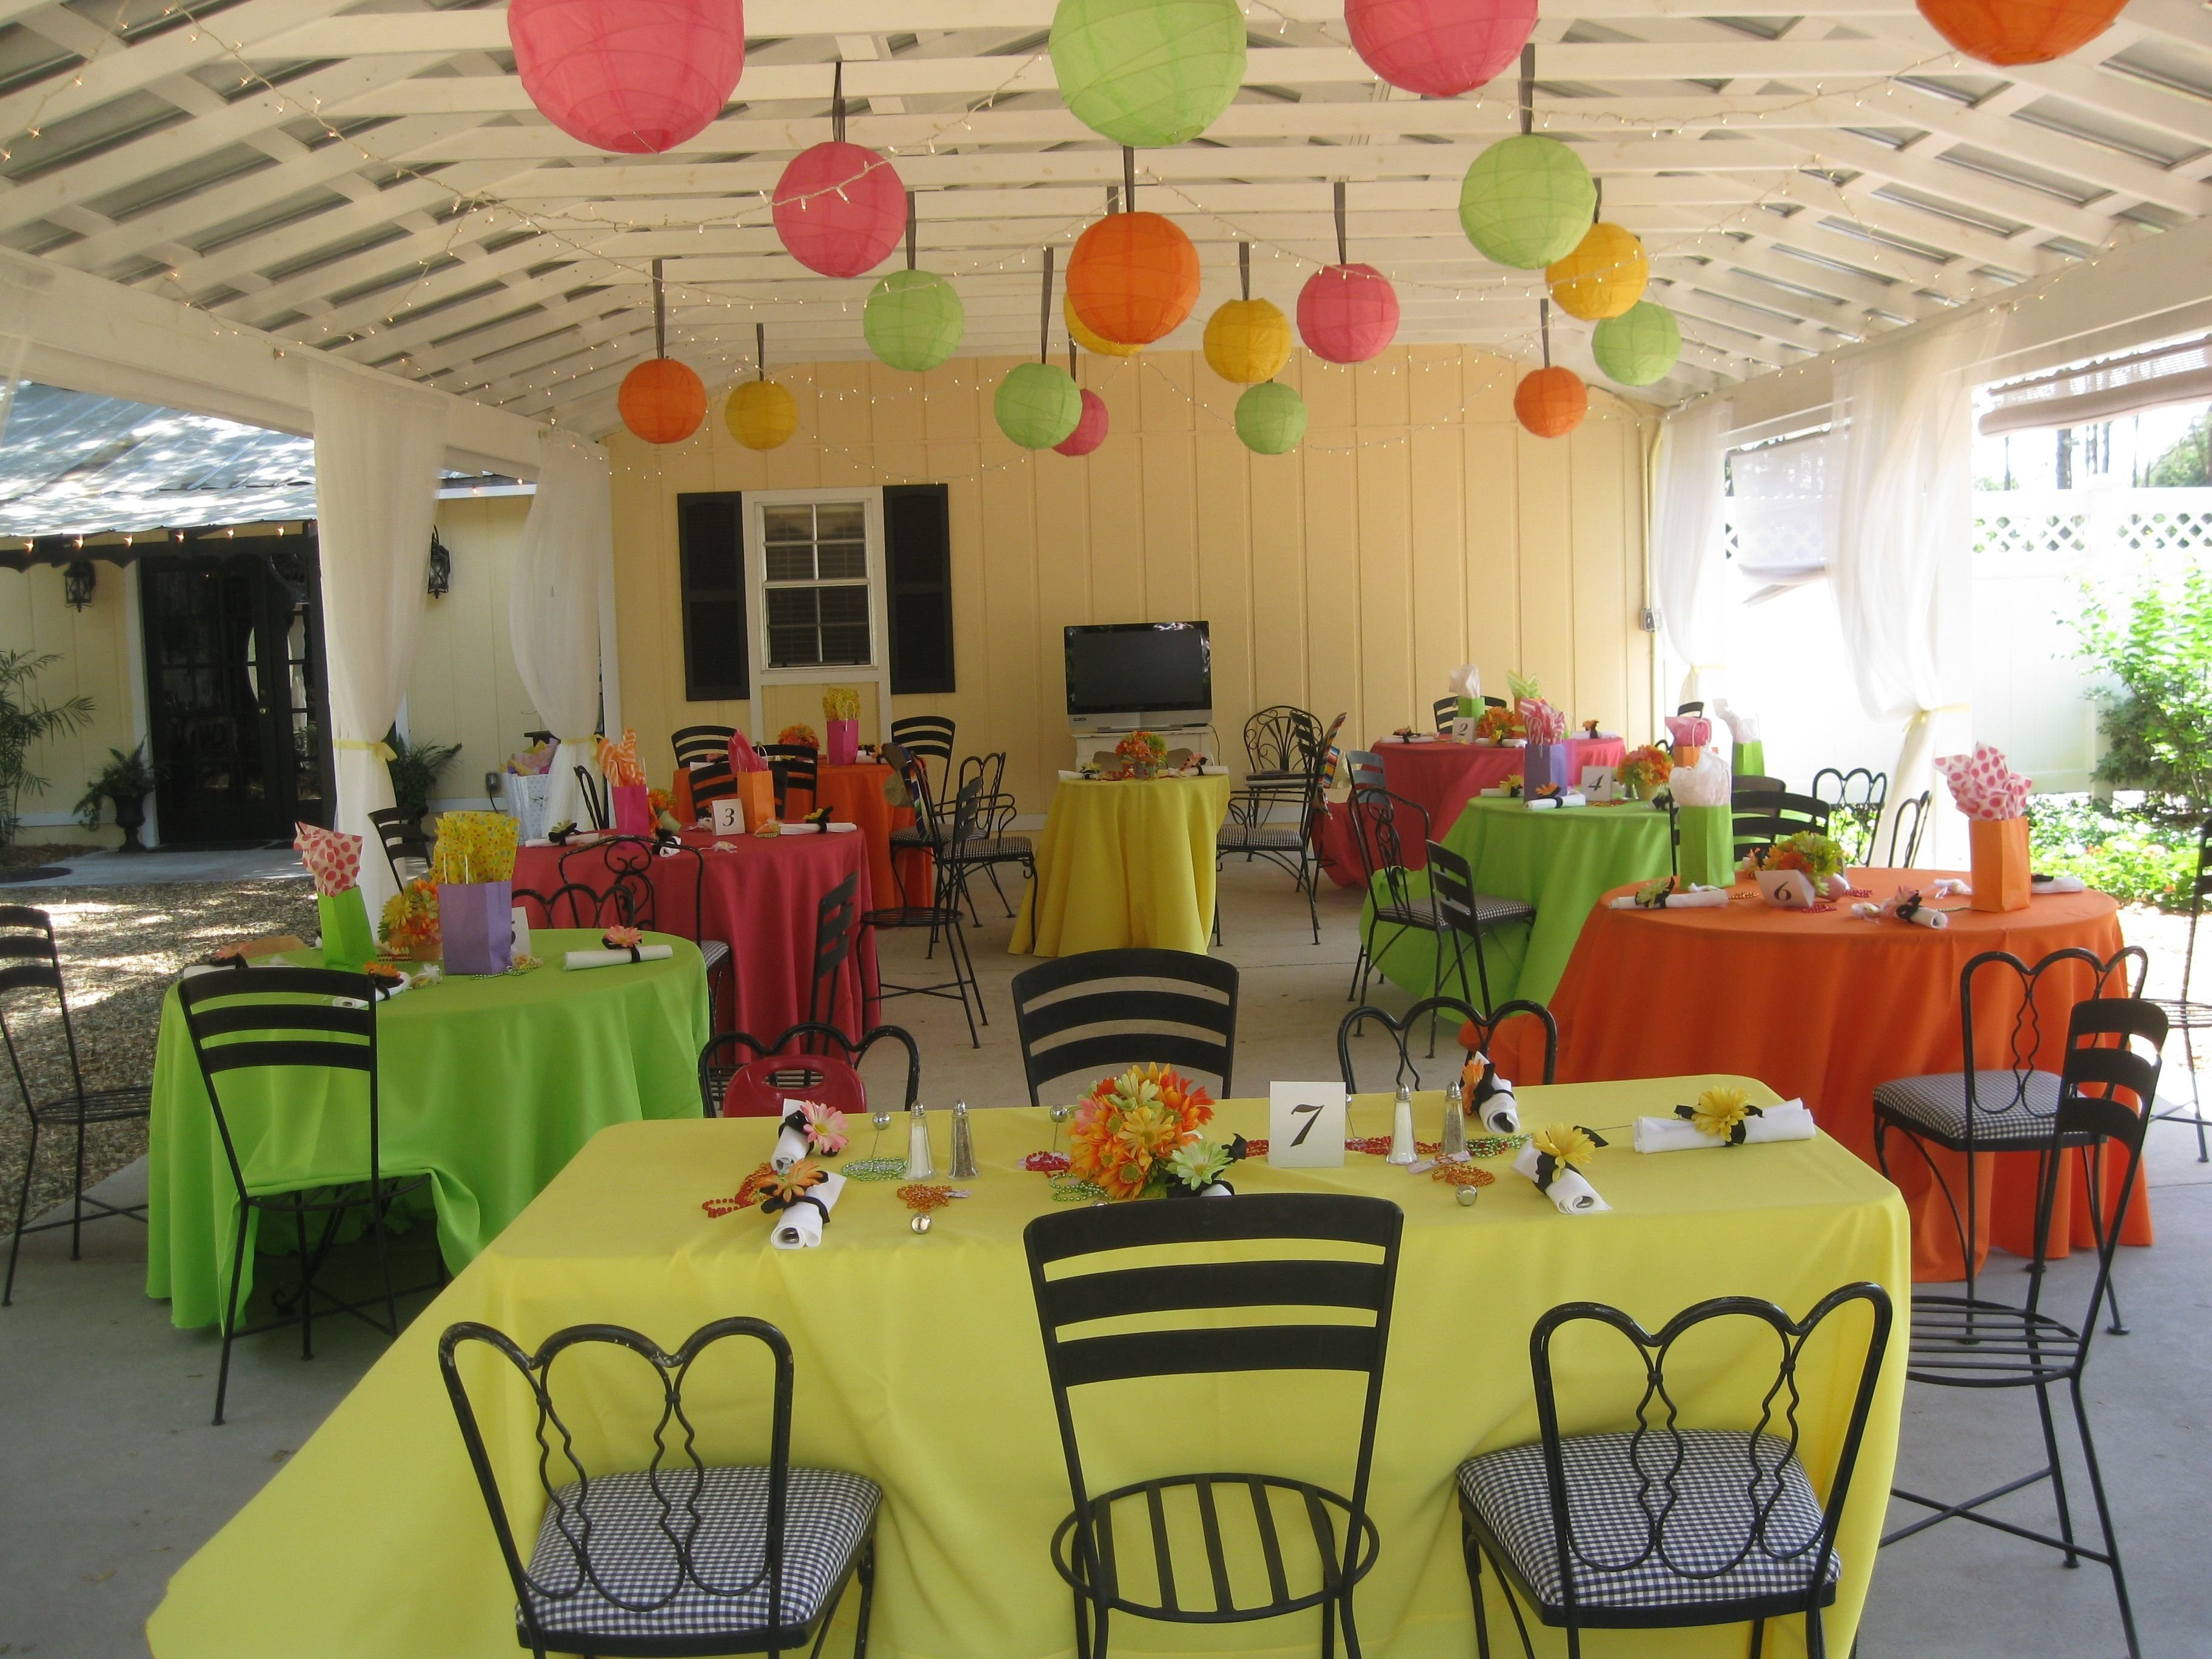 10 Attractive Mexican Party Ideas For Adults colorful tablecloths no overlay mexican themed fiesta sweet 16 2 2021